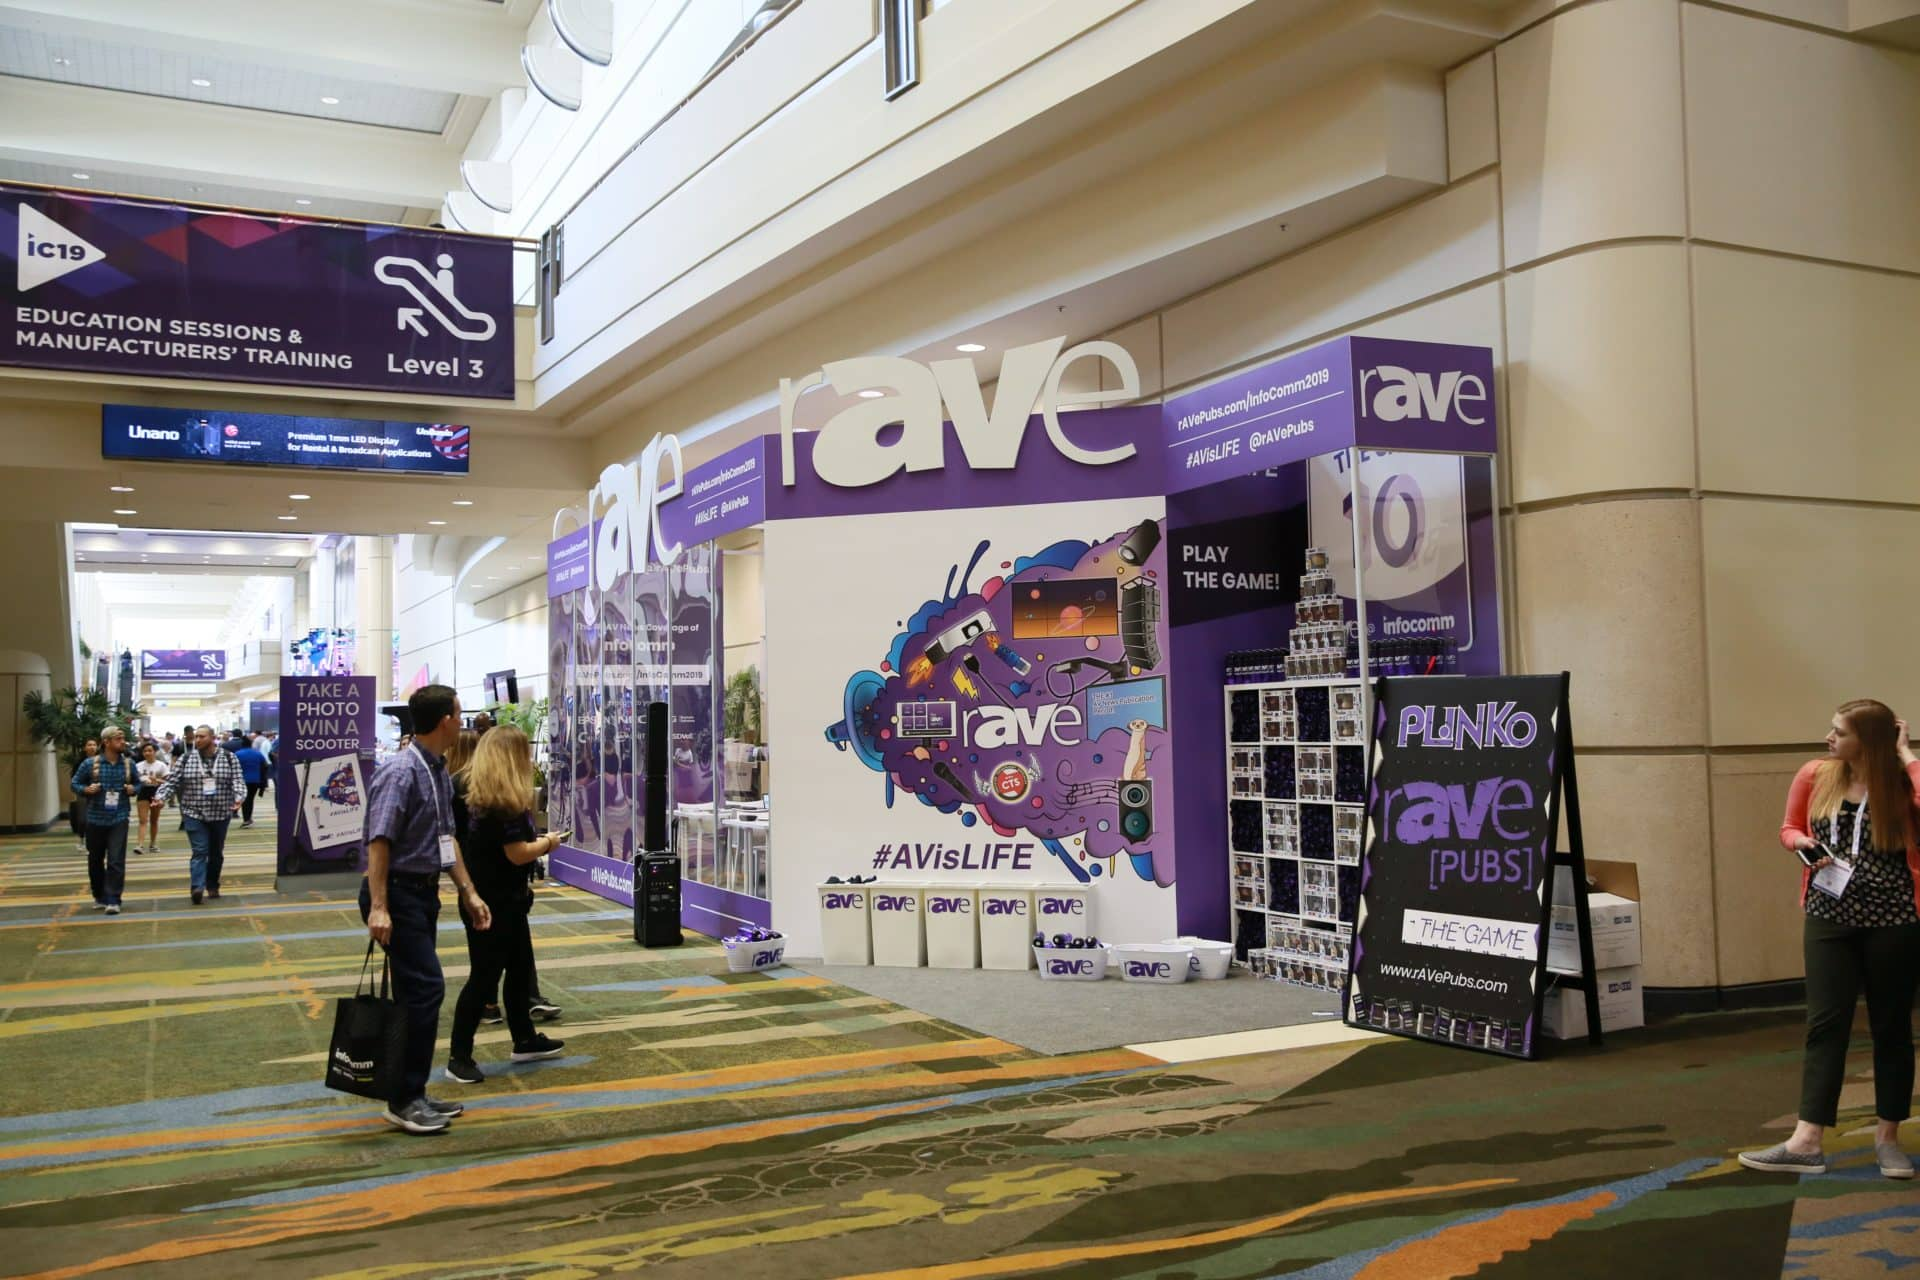 People walk past the rAVe Booth at InfoComm 2019 in Orlando, Florida